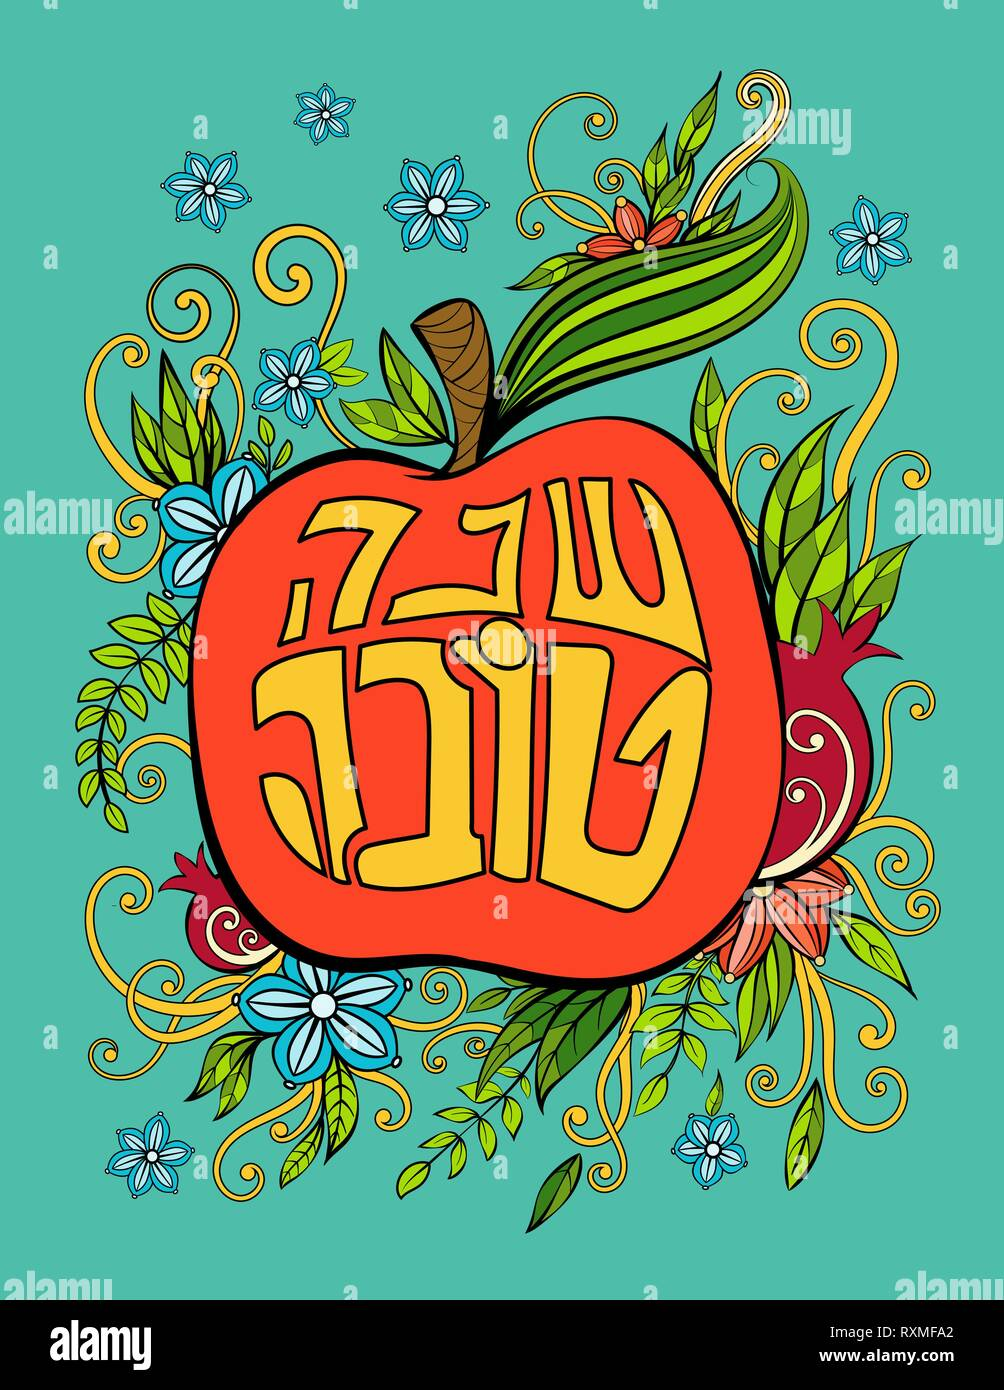 Rosh hashanah - Jewish New Year greeting card template with apple and pomegranate. Hebrew text Happy New Year. Hand drawn vector illustration. Stock Vector